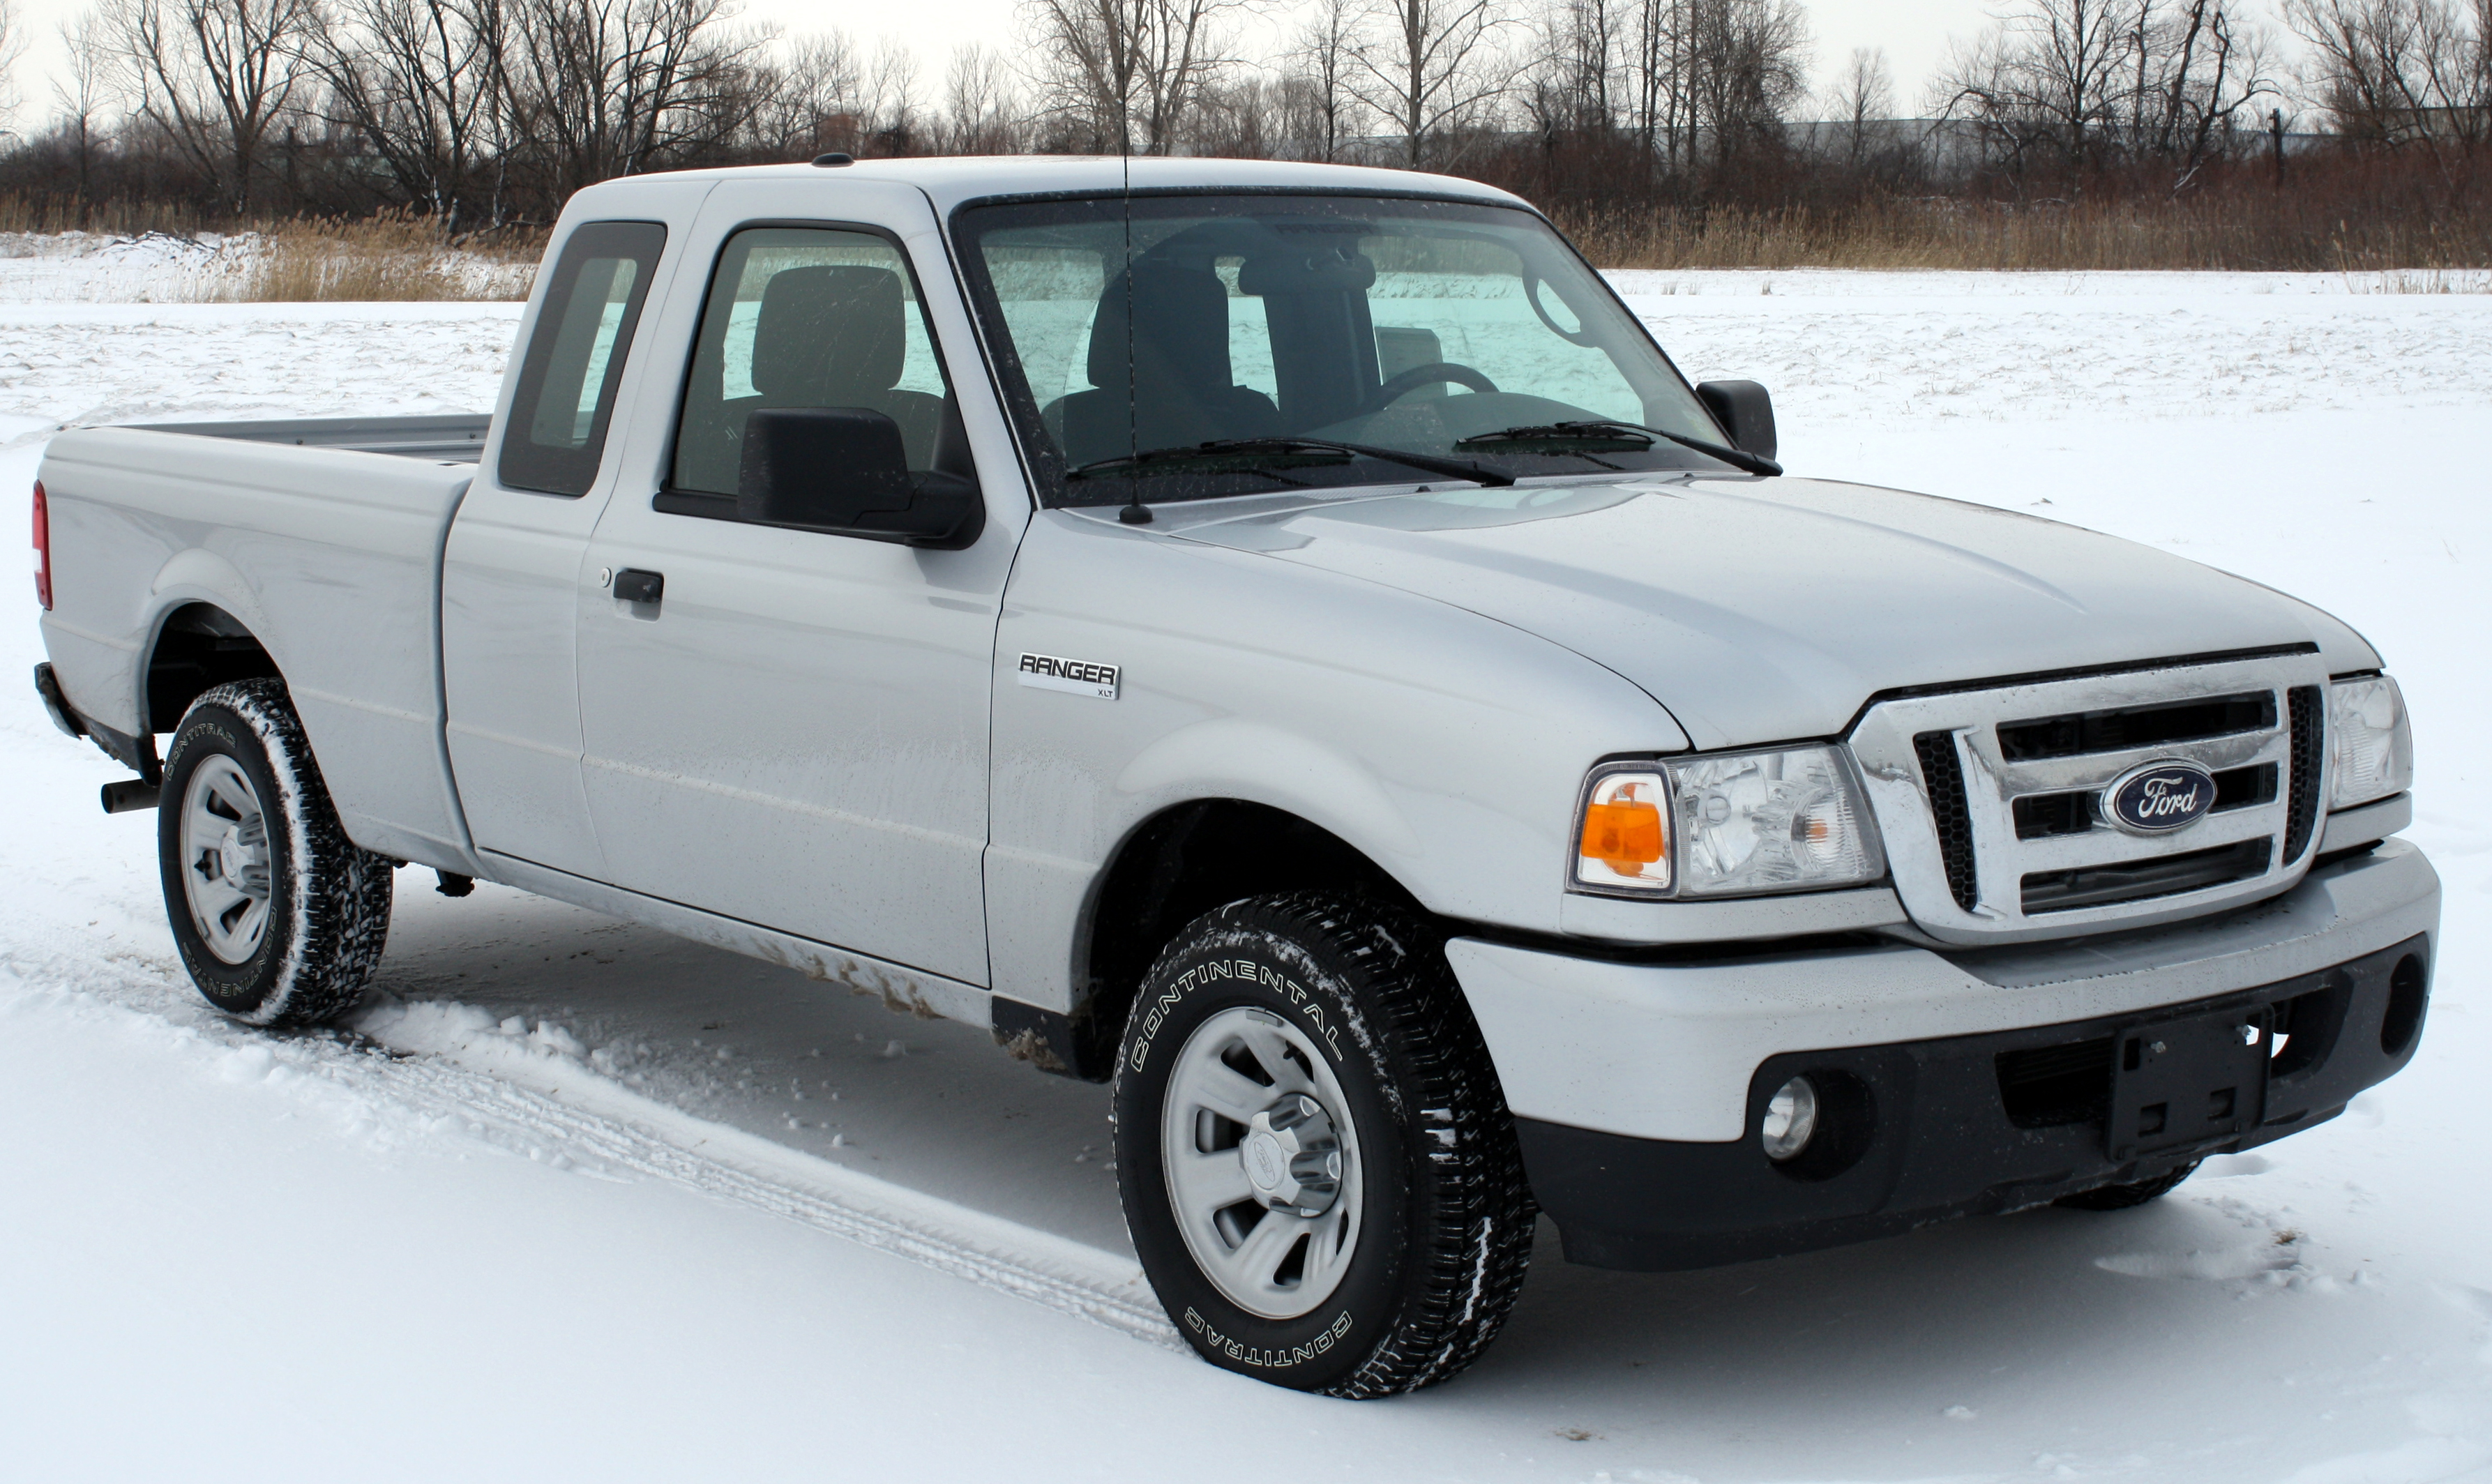 ford ranger (r) 2000 pictures